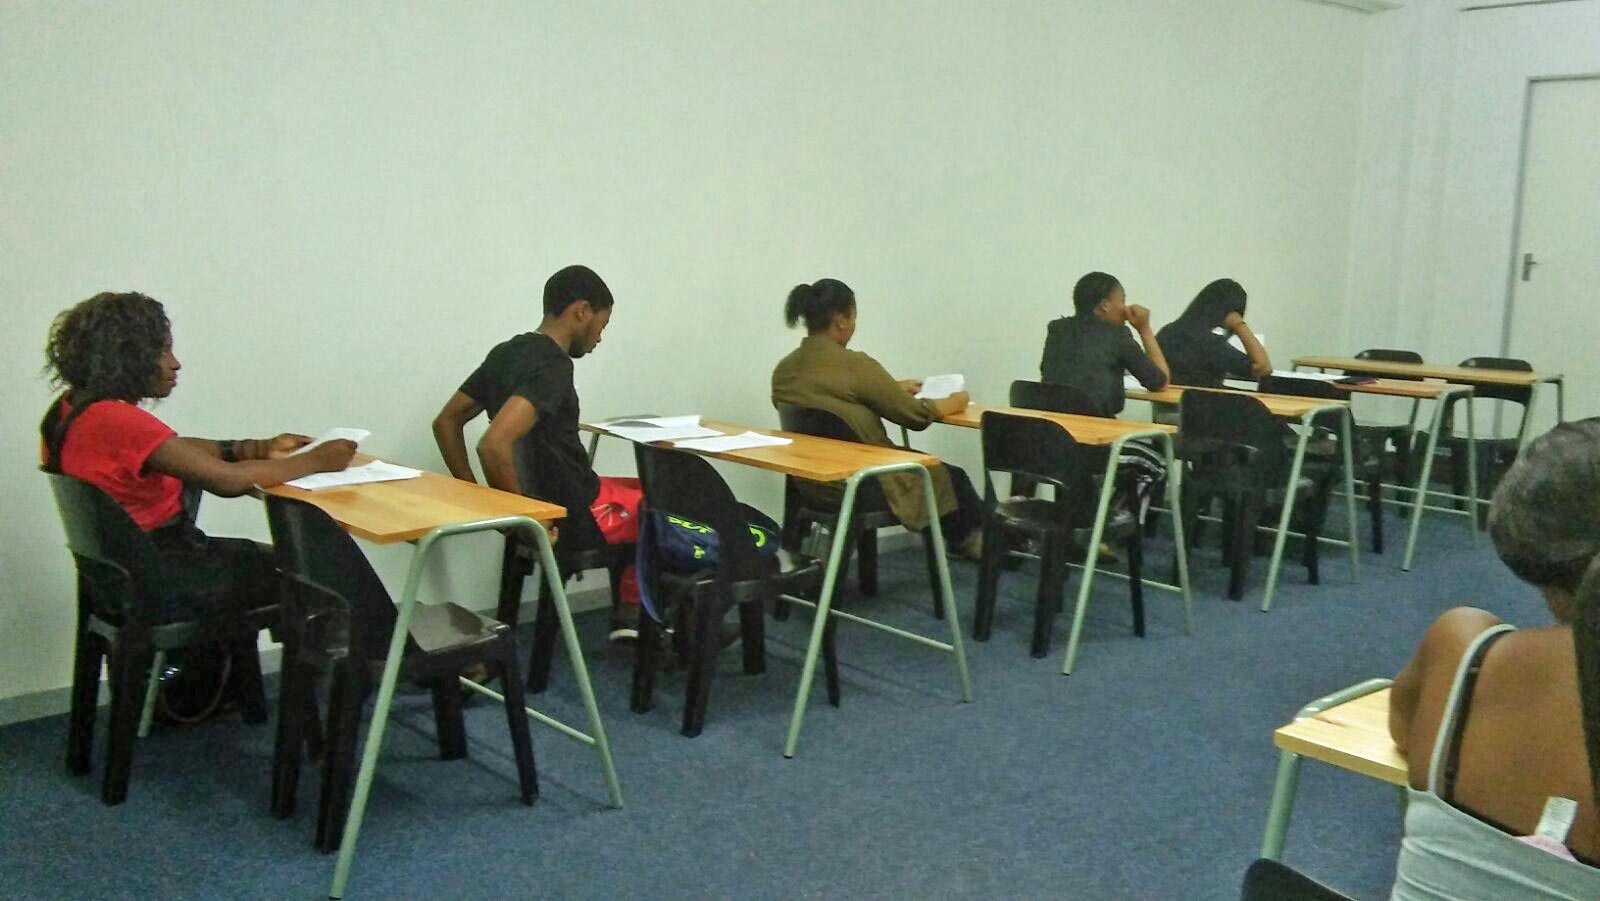 sa-law-school-gallery-durban-6.jpg